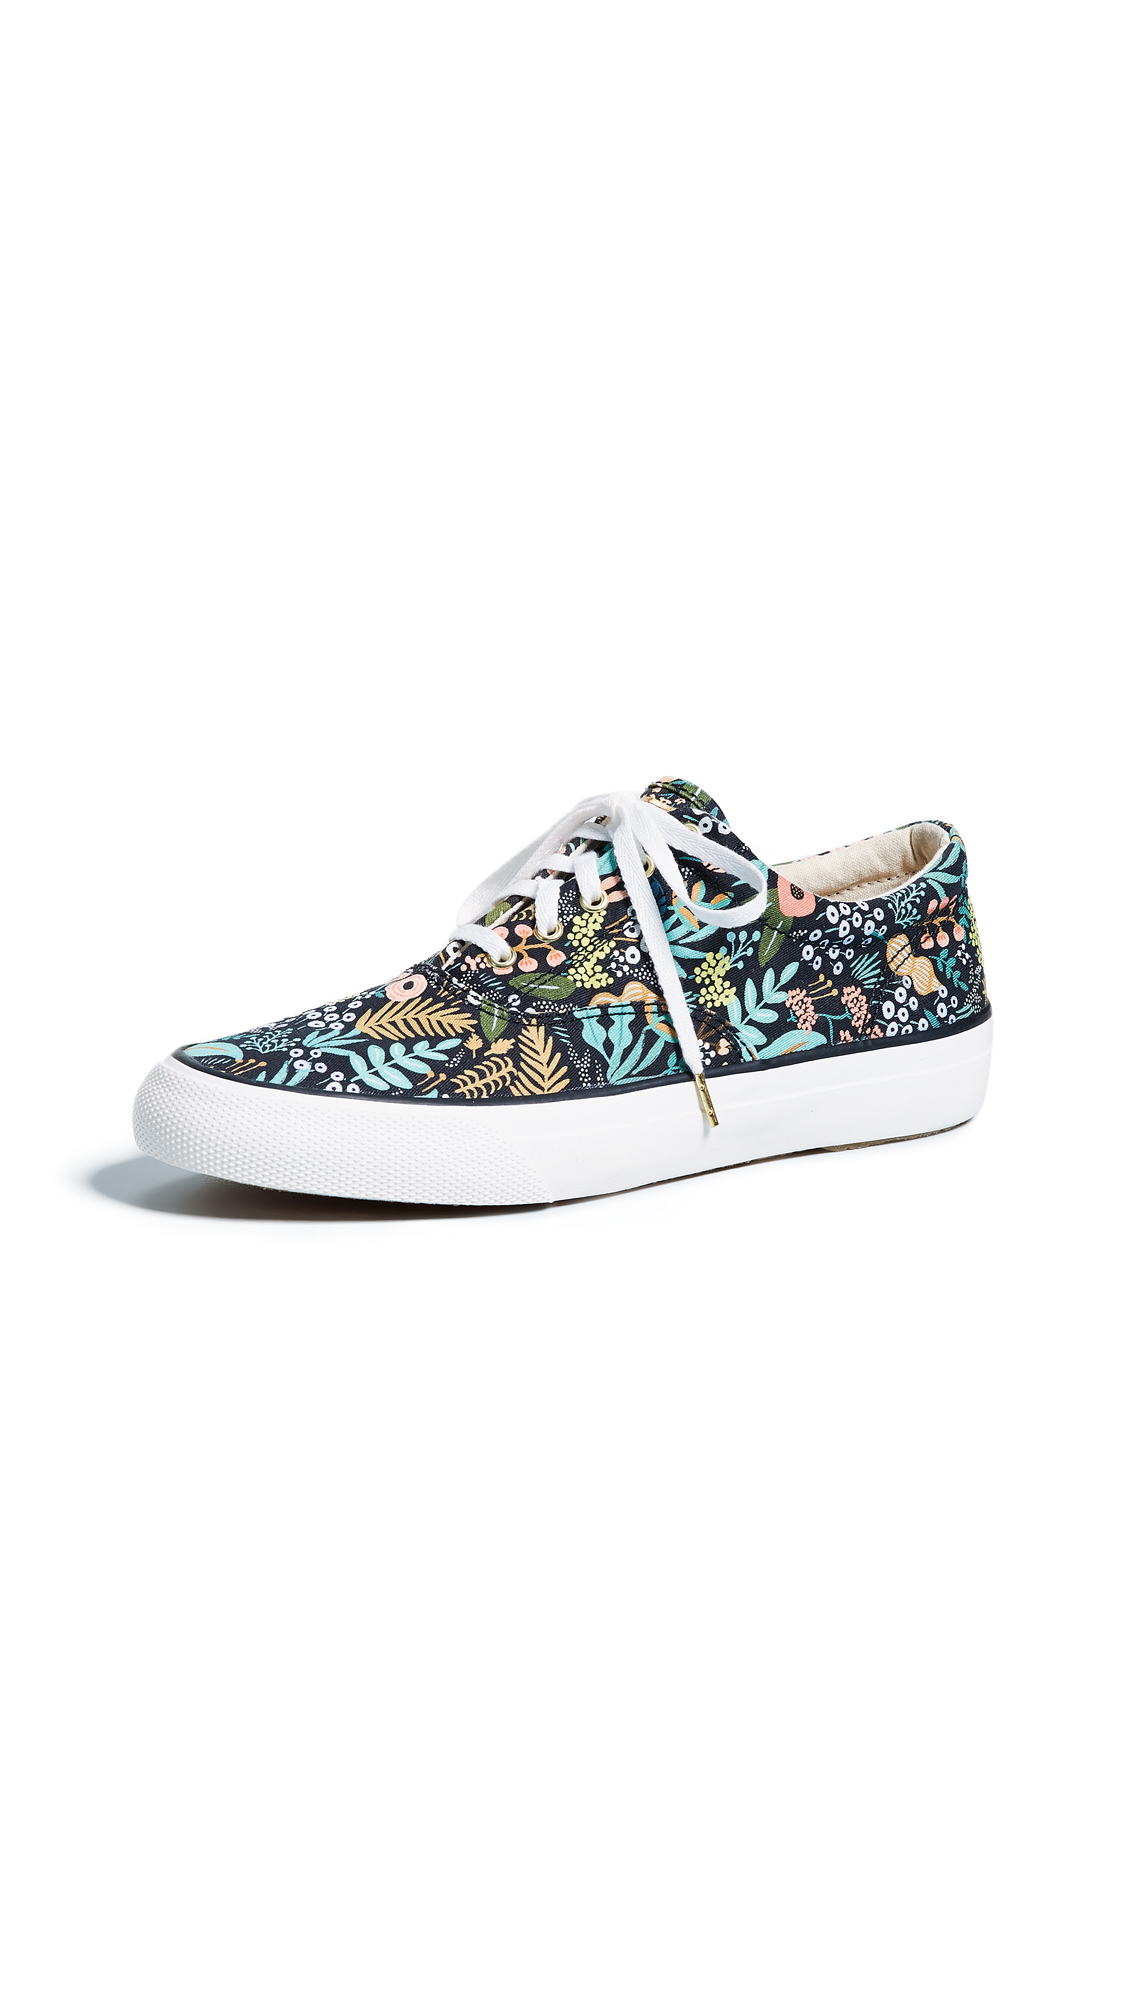 Keds x Rifle Paper CO Anchor Sneakers - Black